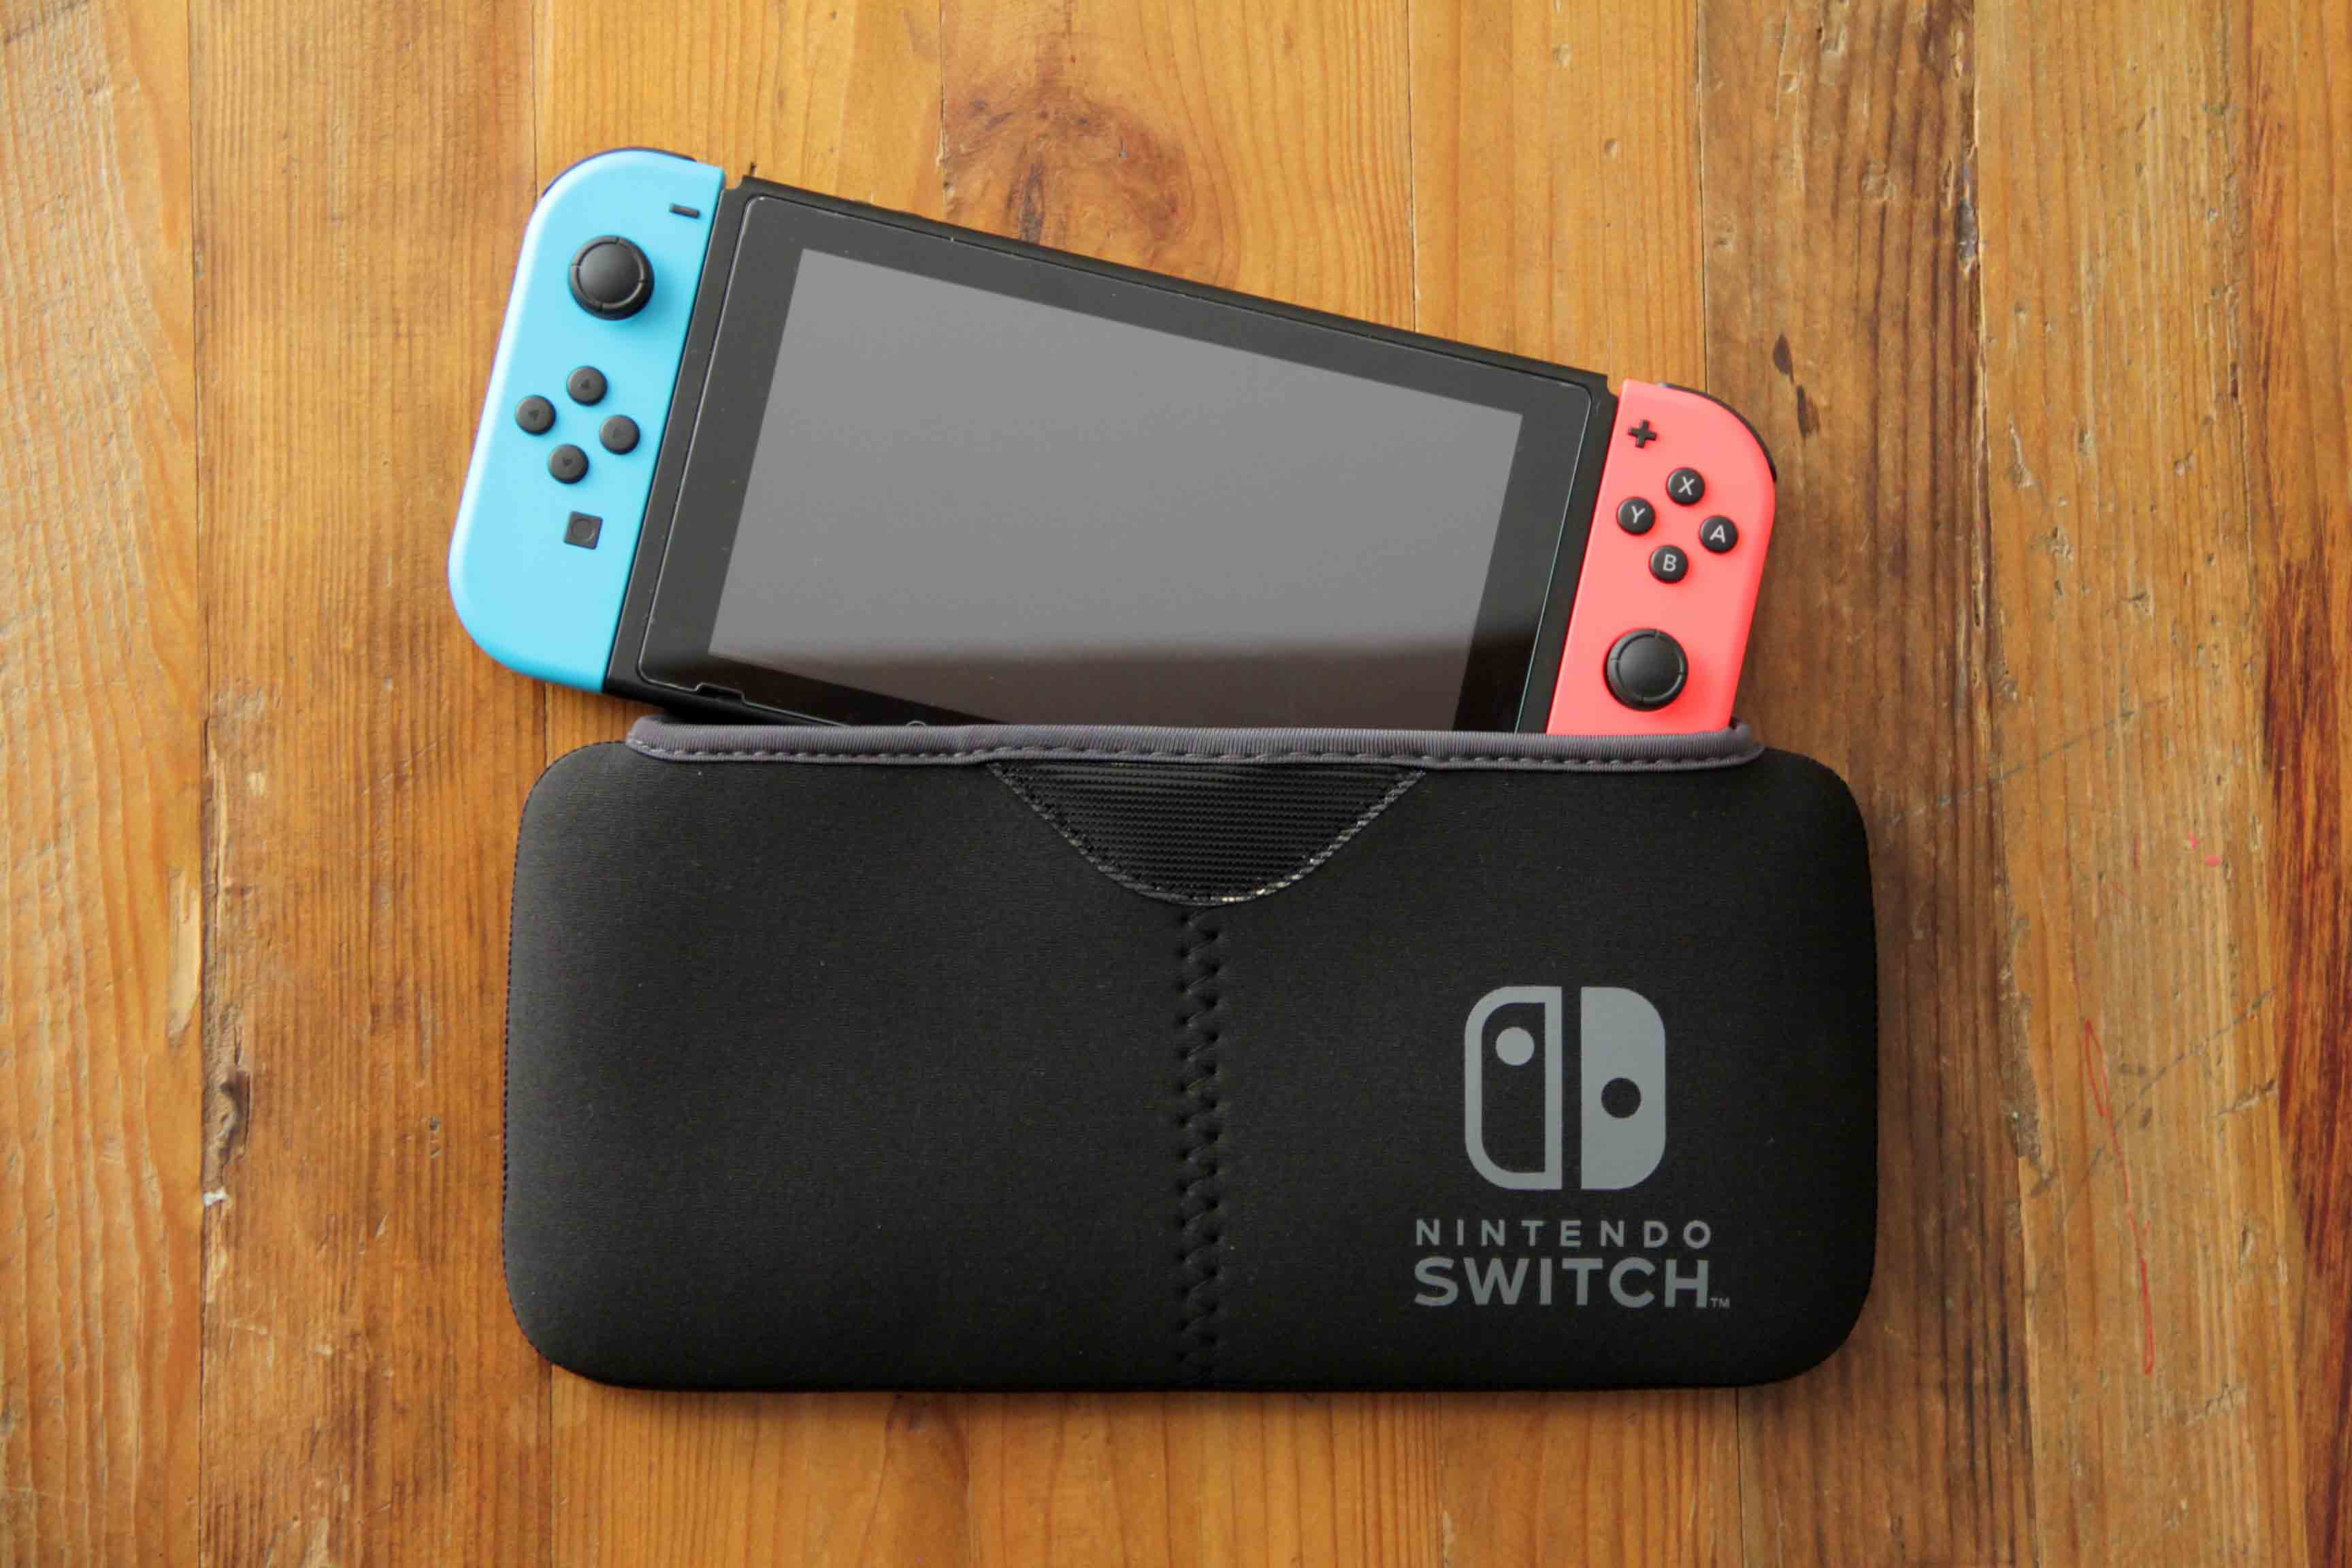 Nintendo switchと専用ケースポーチ|QUICK POUCHの画像